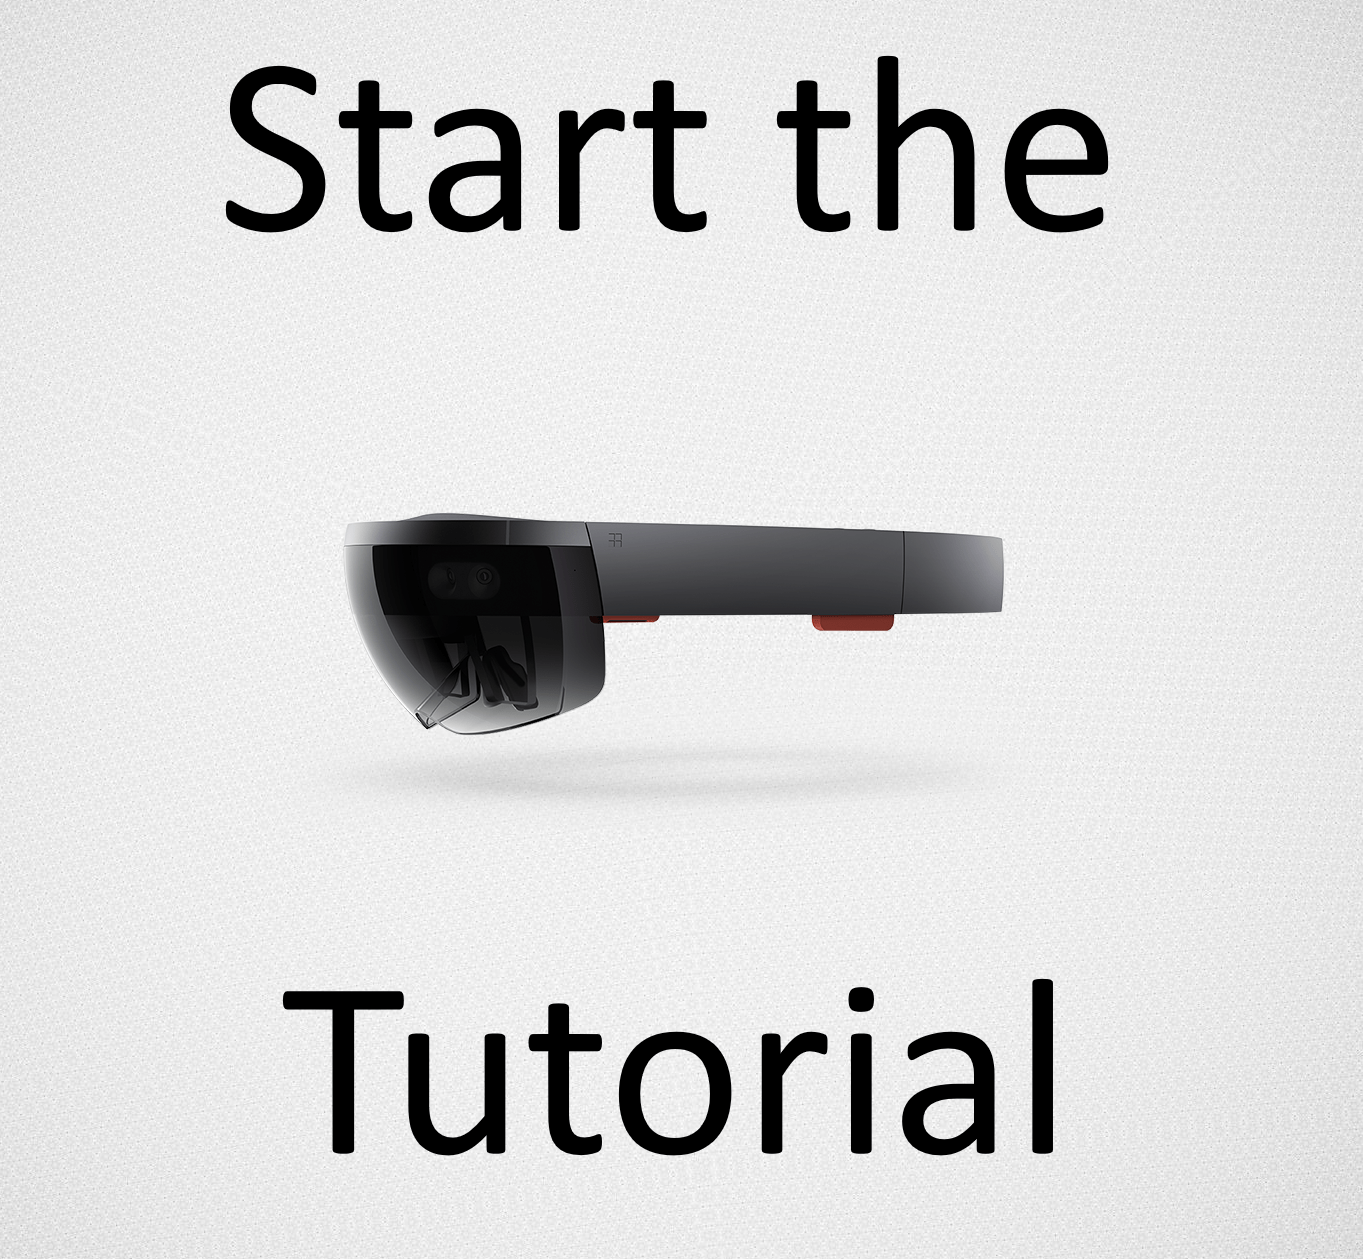 Start the Tutorial